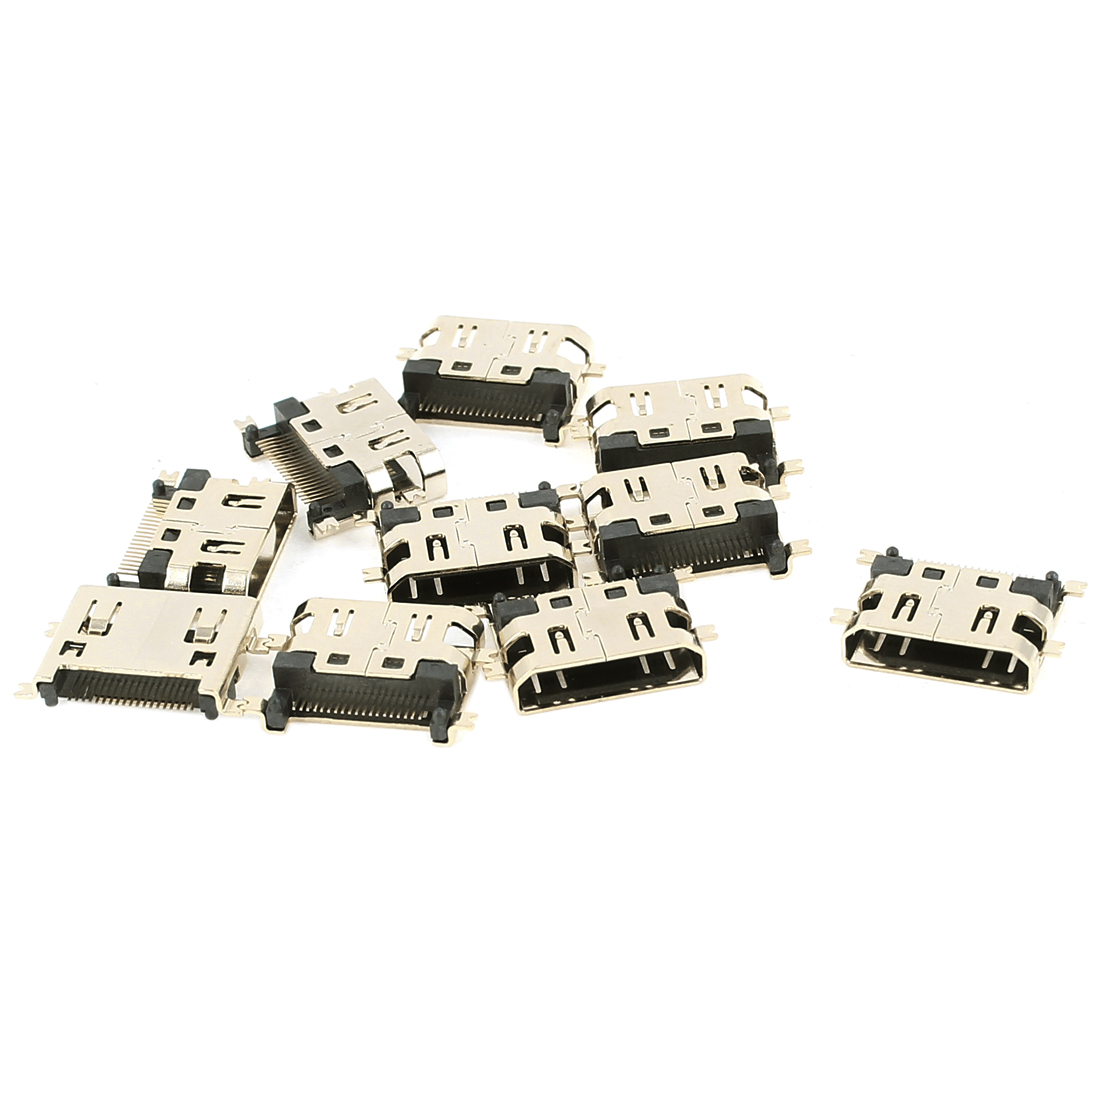 10PCS SMT DIP Type Single Row 19Pins HDMI Female Connectors Gold Tone